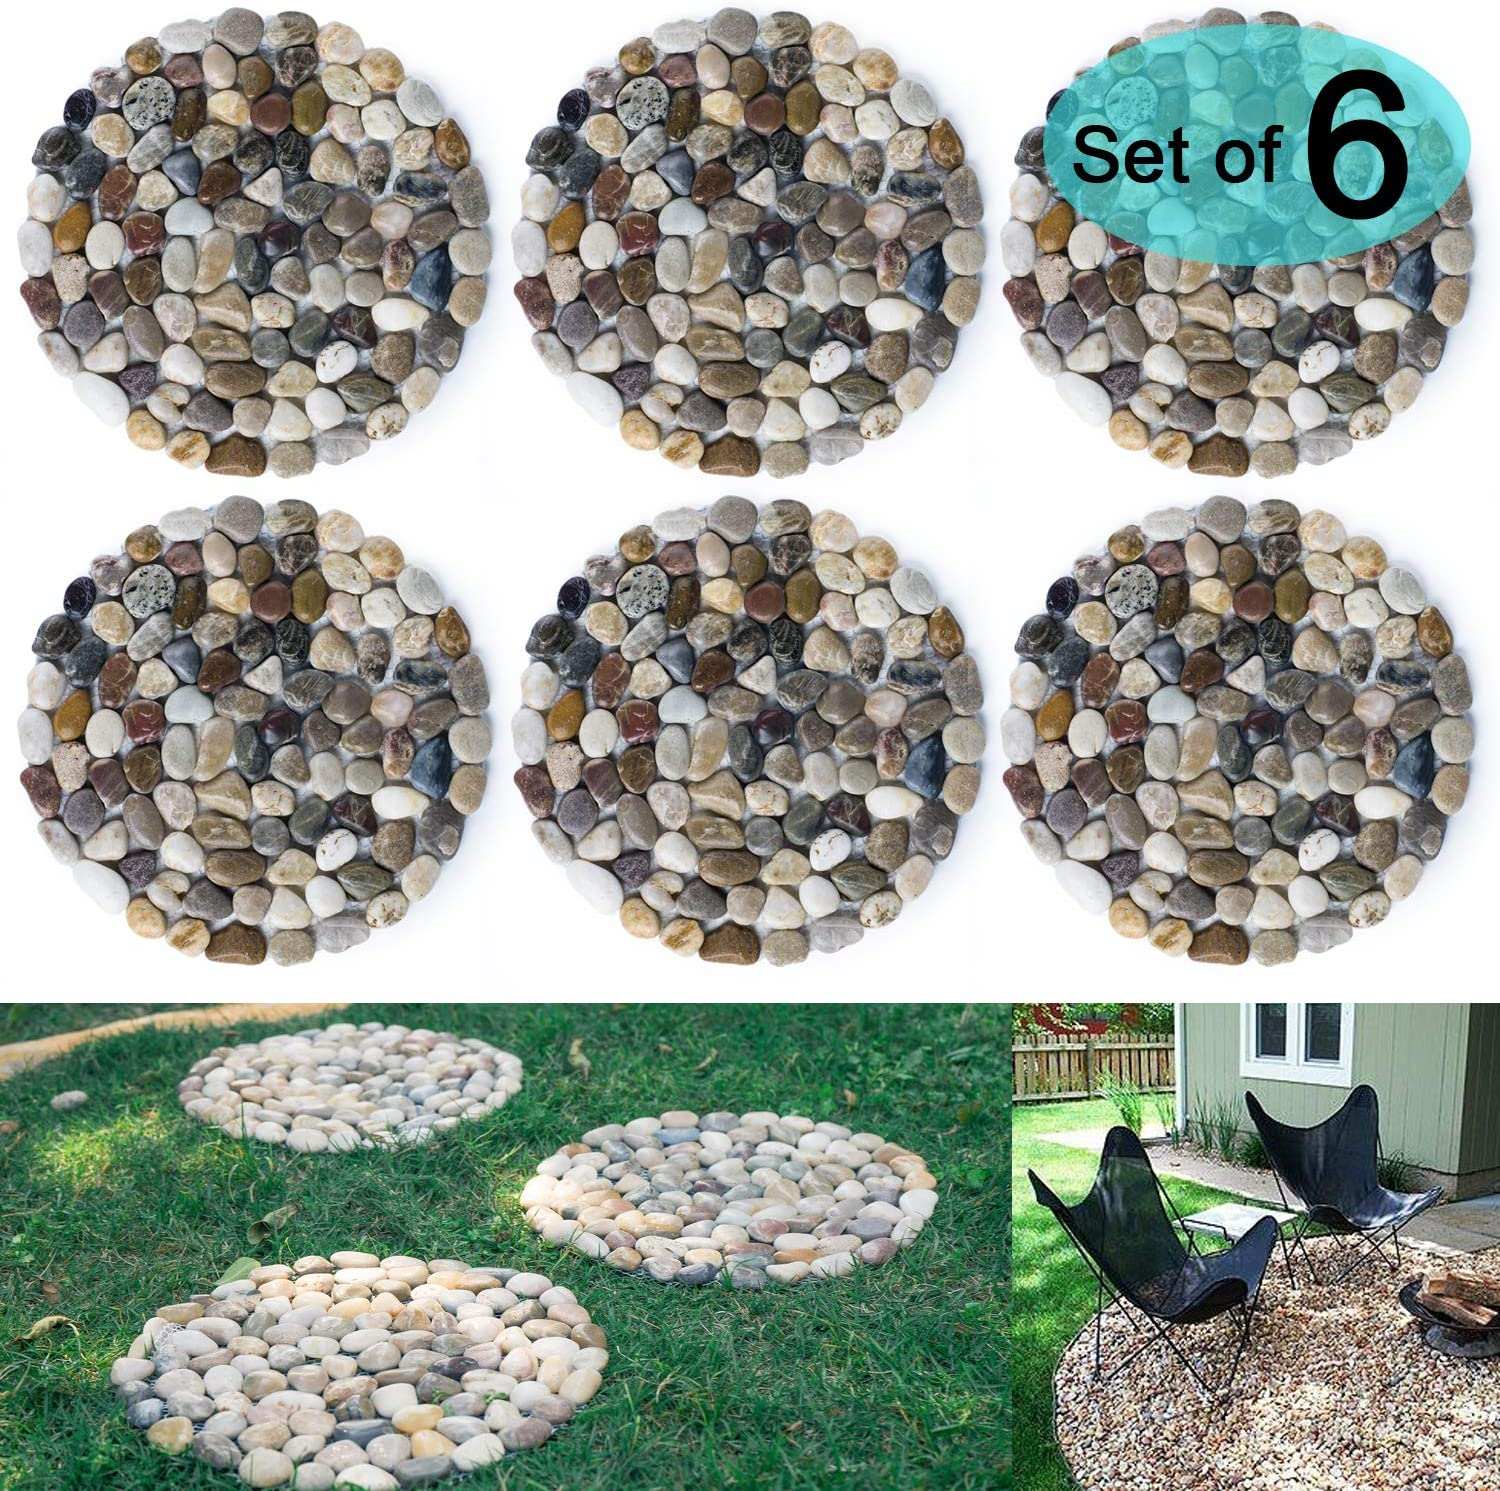 SUNFACE River Rock Stepping Stones Pavers Outdoor for Garden, Set of 6 (Roundness)